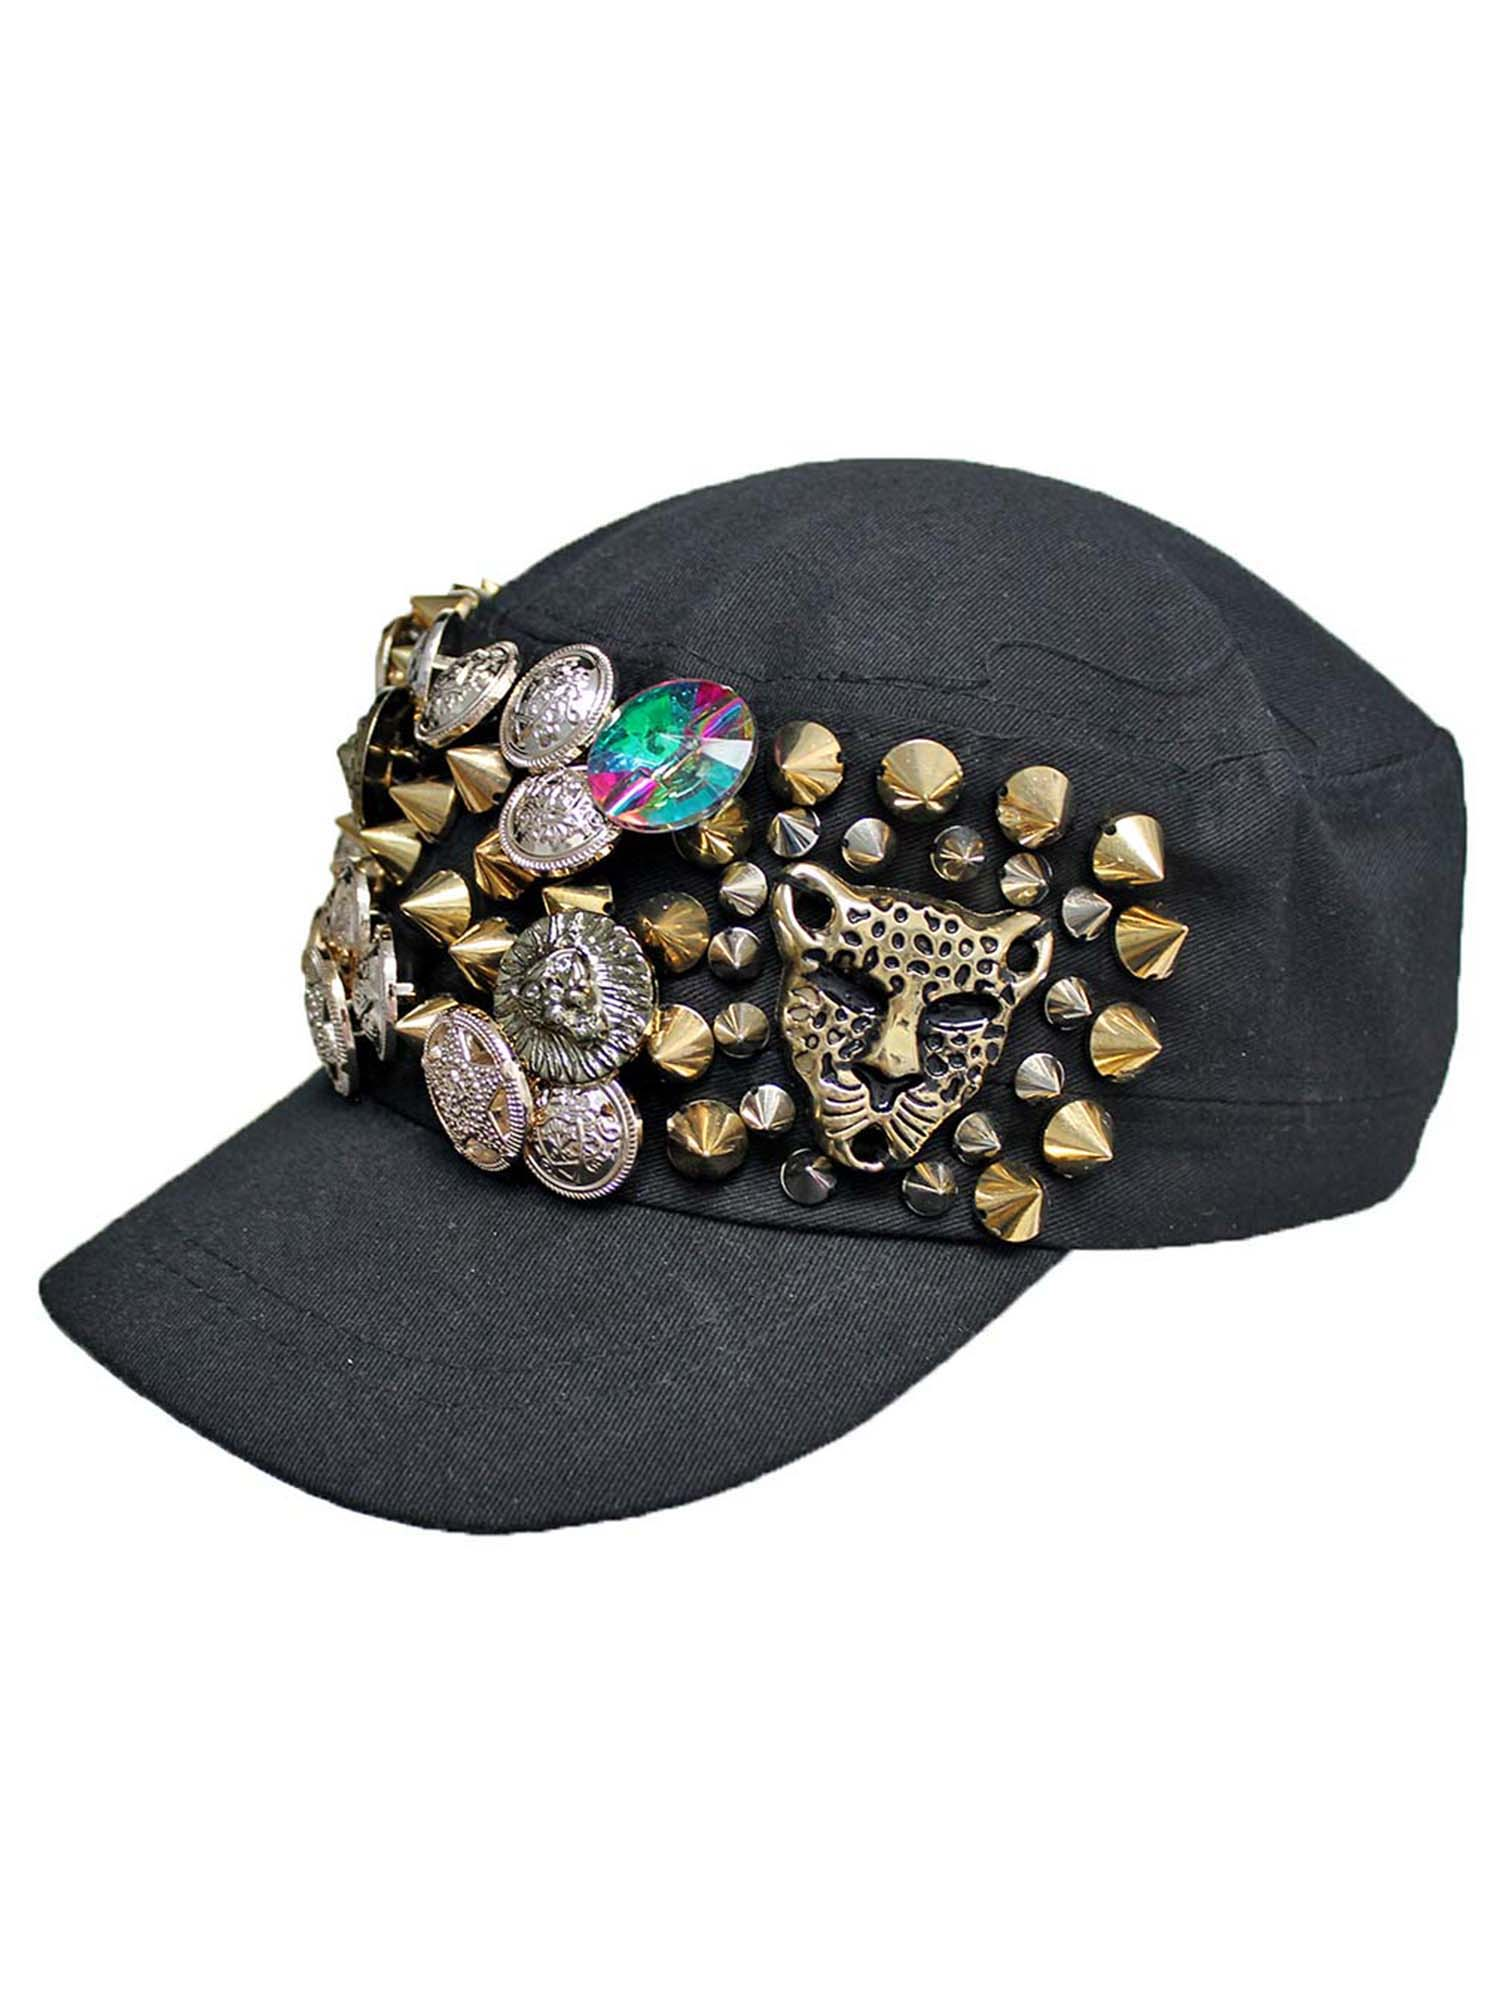 622114f68d86 BLACK CADET CAP HAT WITH GOLD SPIKES & BUTTONS 706433100750 | eBay